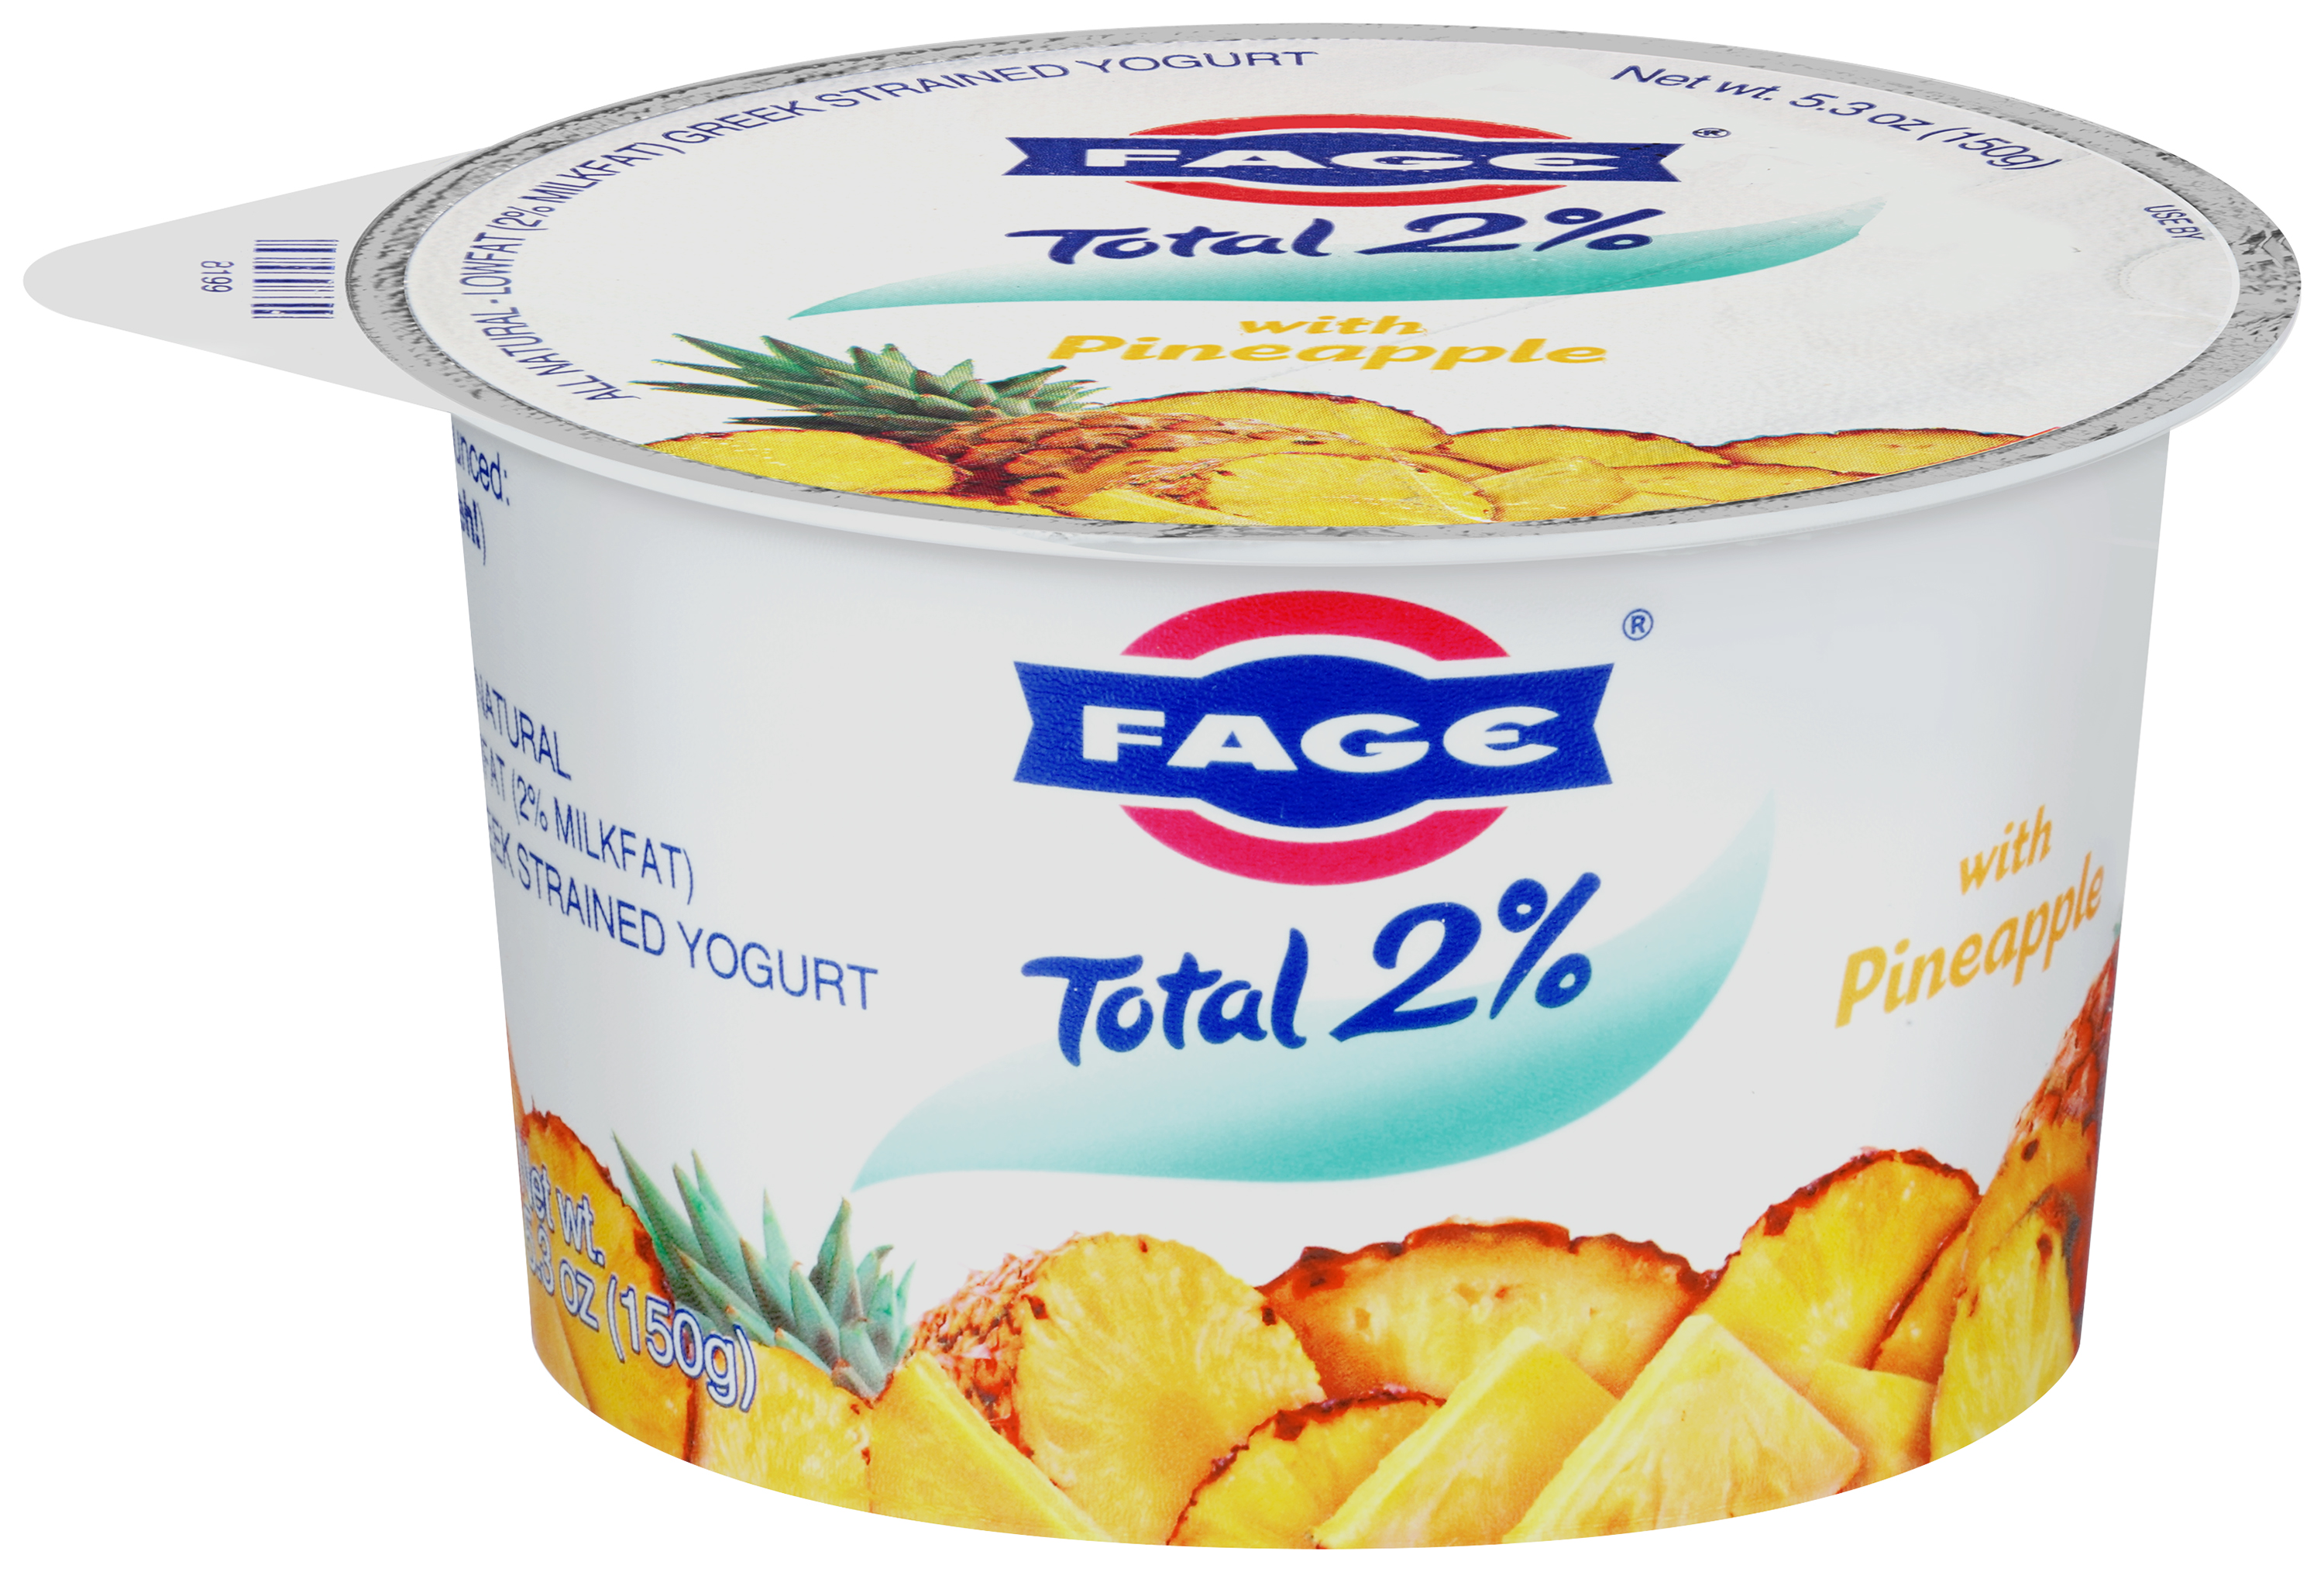 Fage Total 2% Lowfat Greek Strained Yogurt with Pineapple